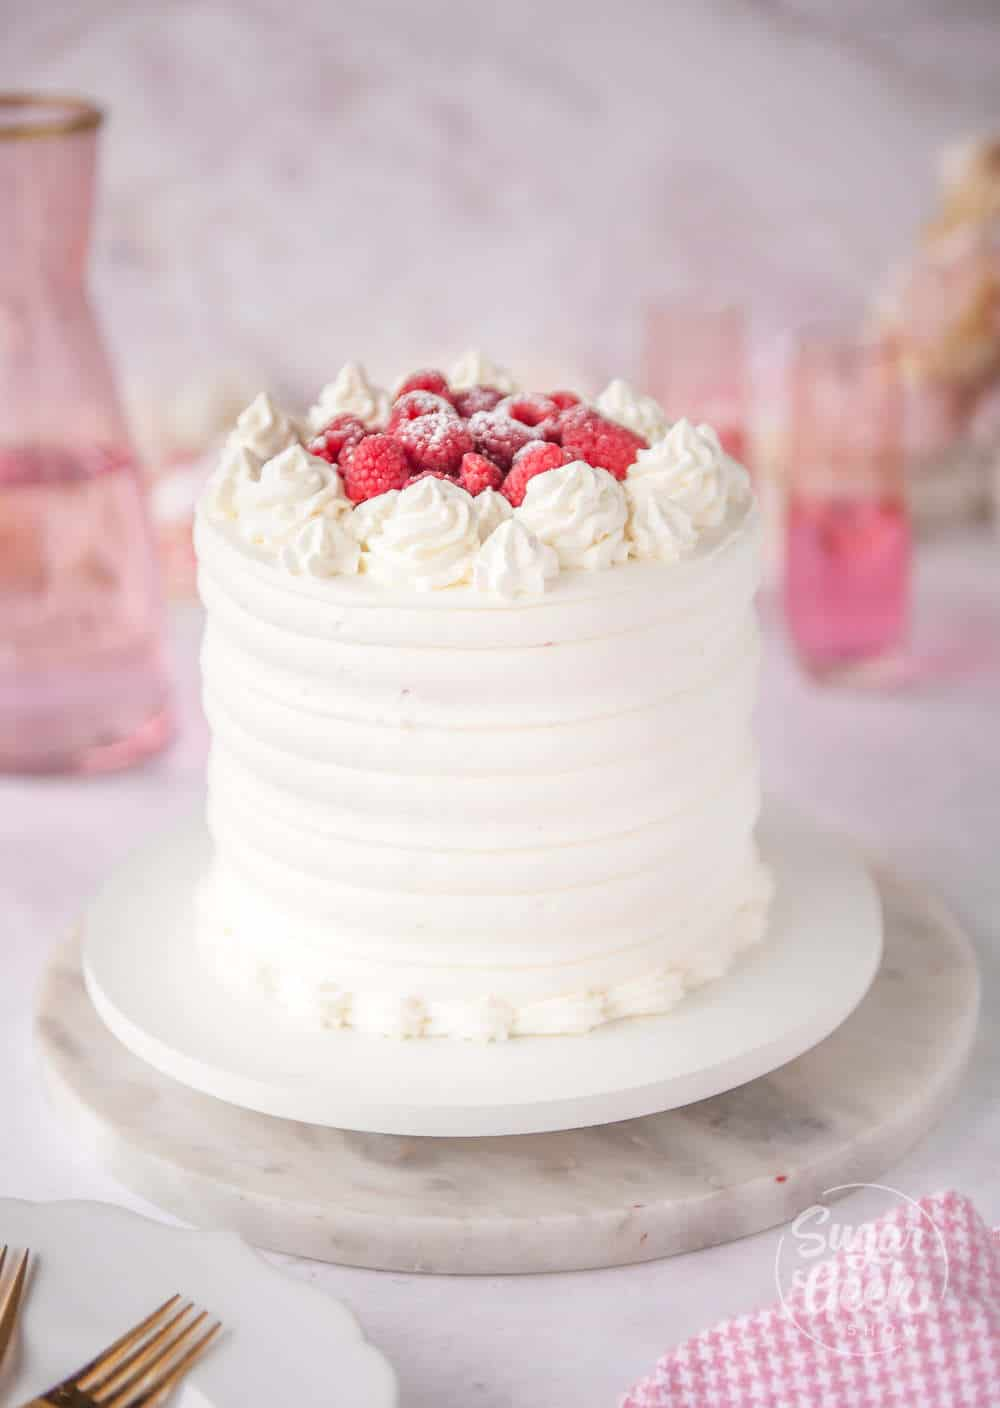 pink velvet cake frosted in stabilized whipped cream with fresh raspberries on top